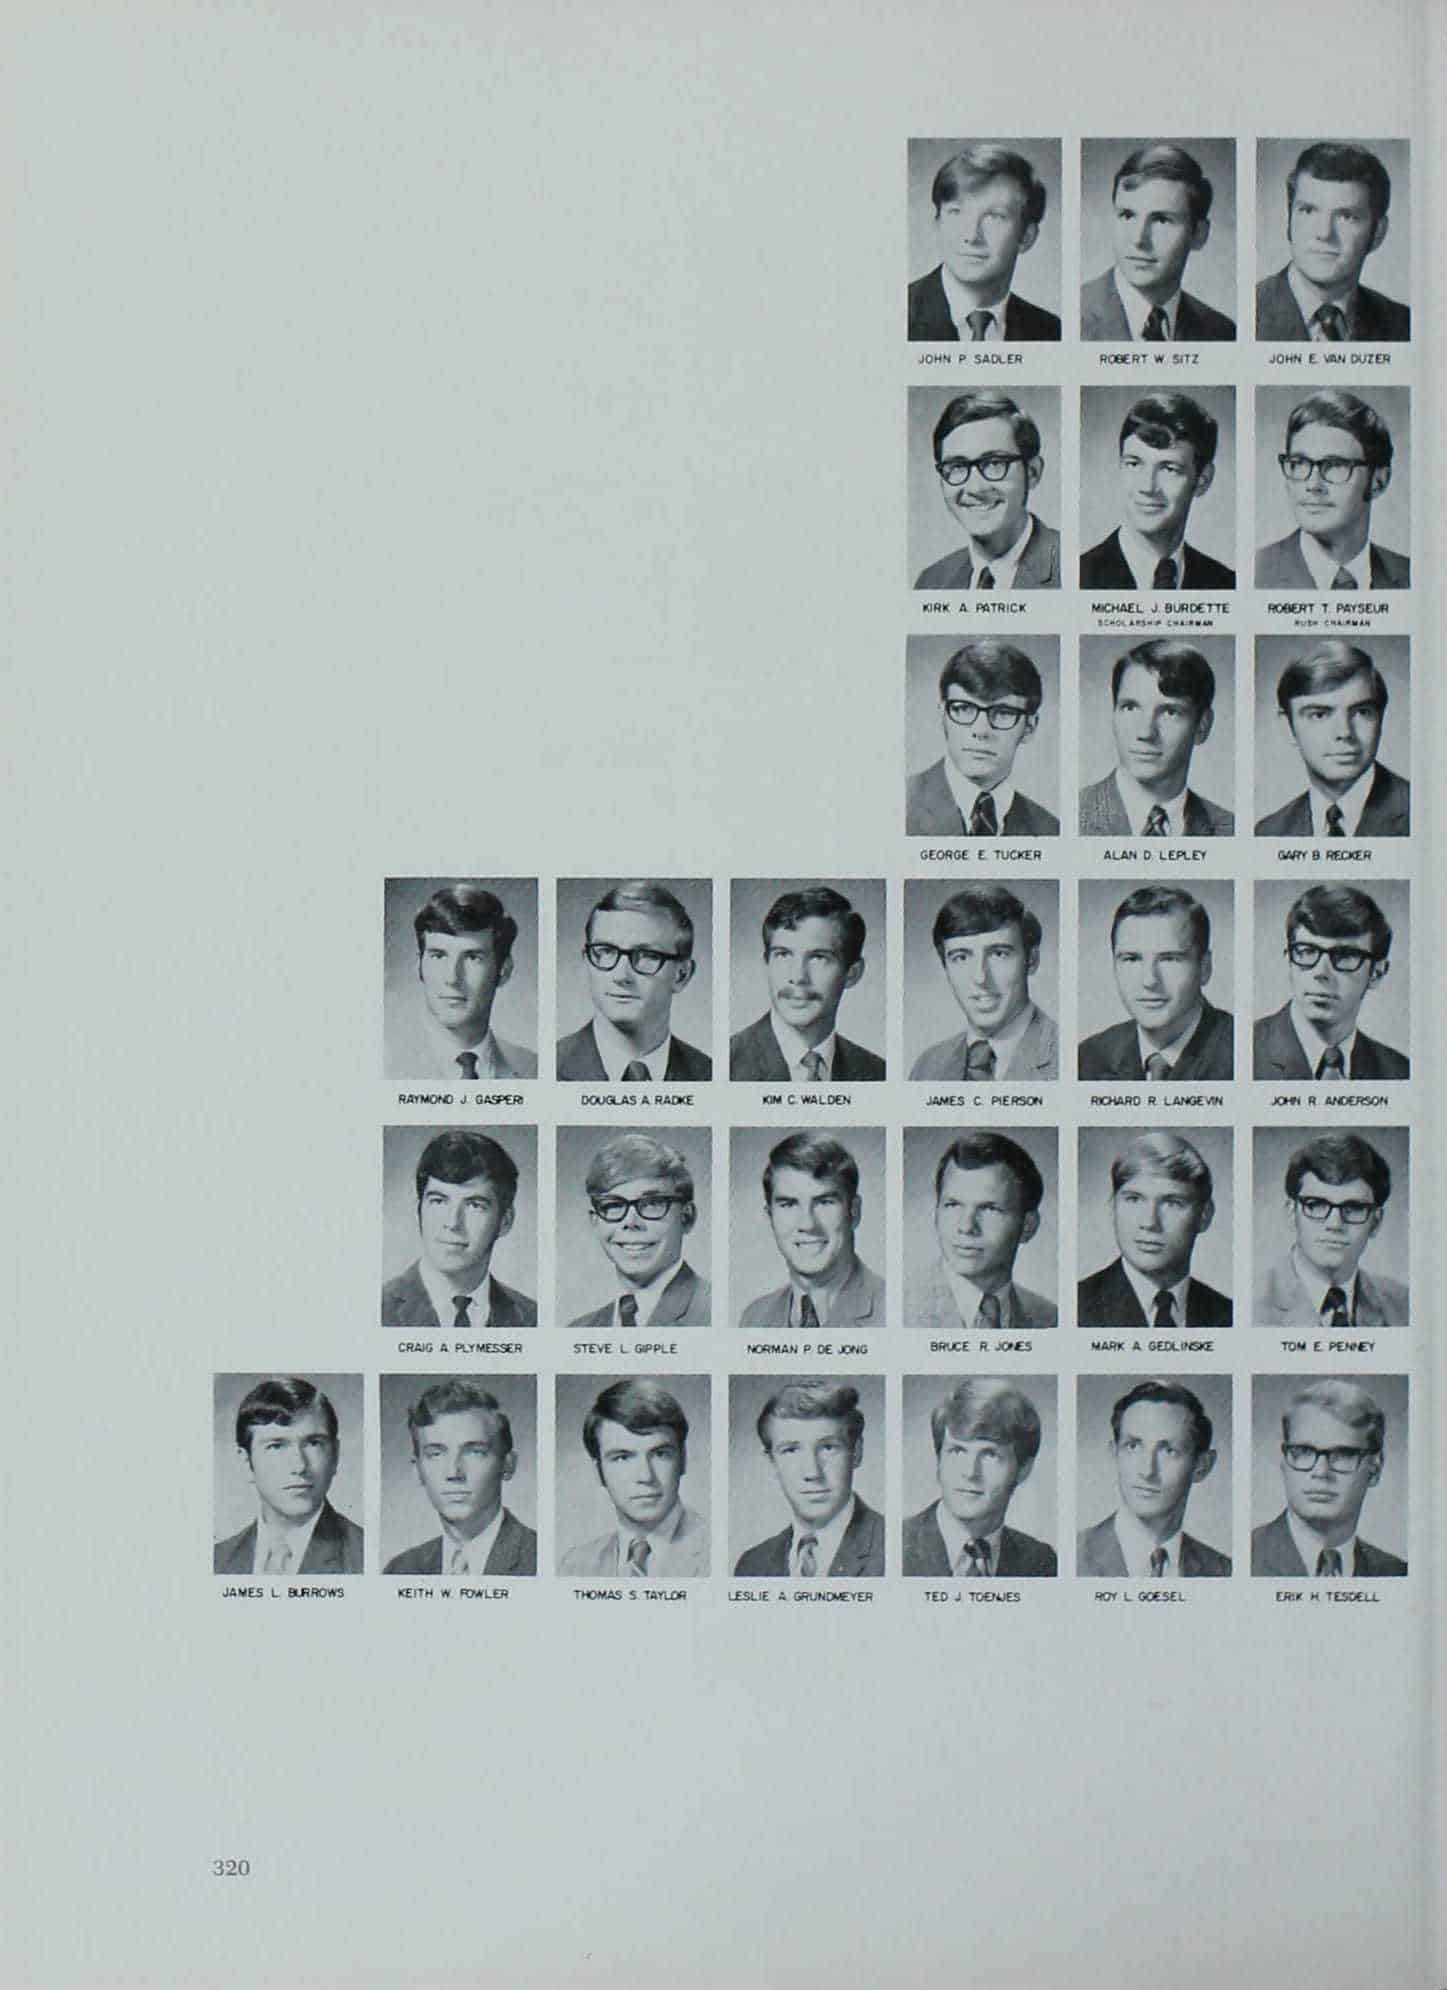 1970 Iowa State Yearbook p.1